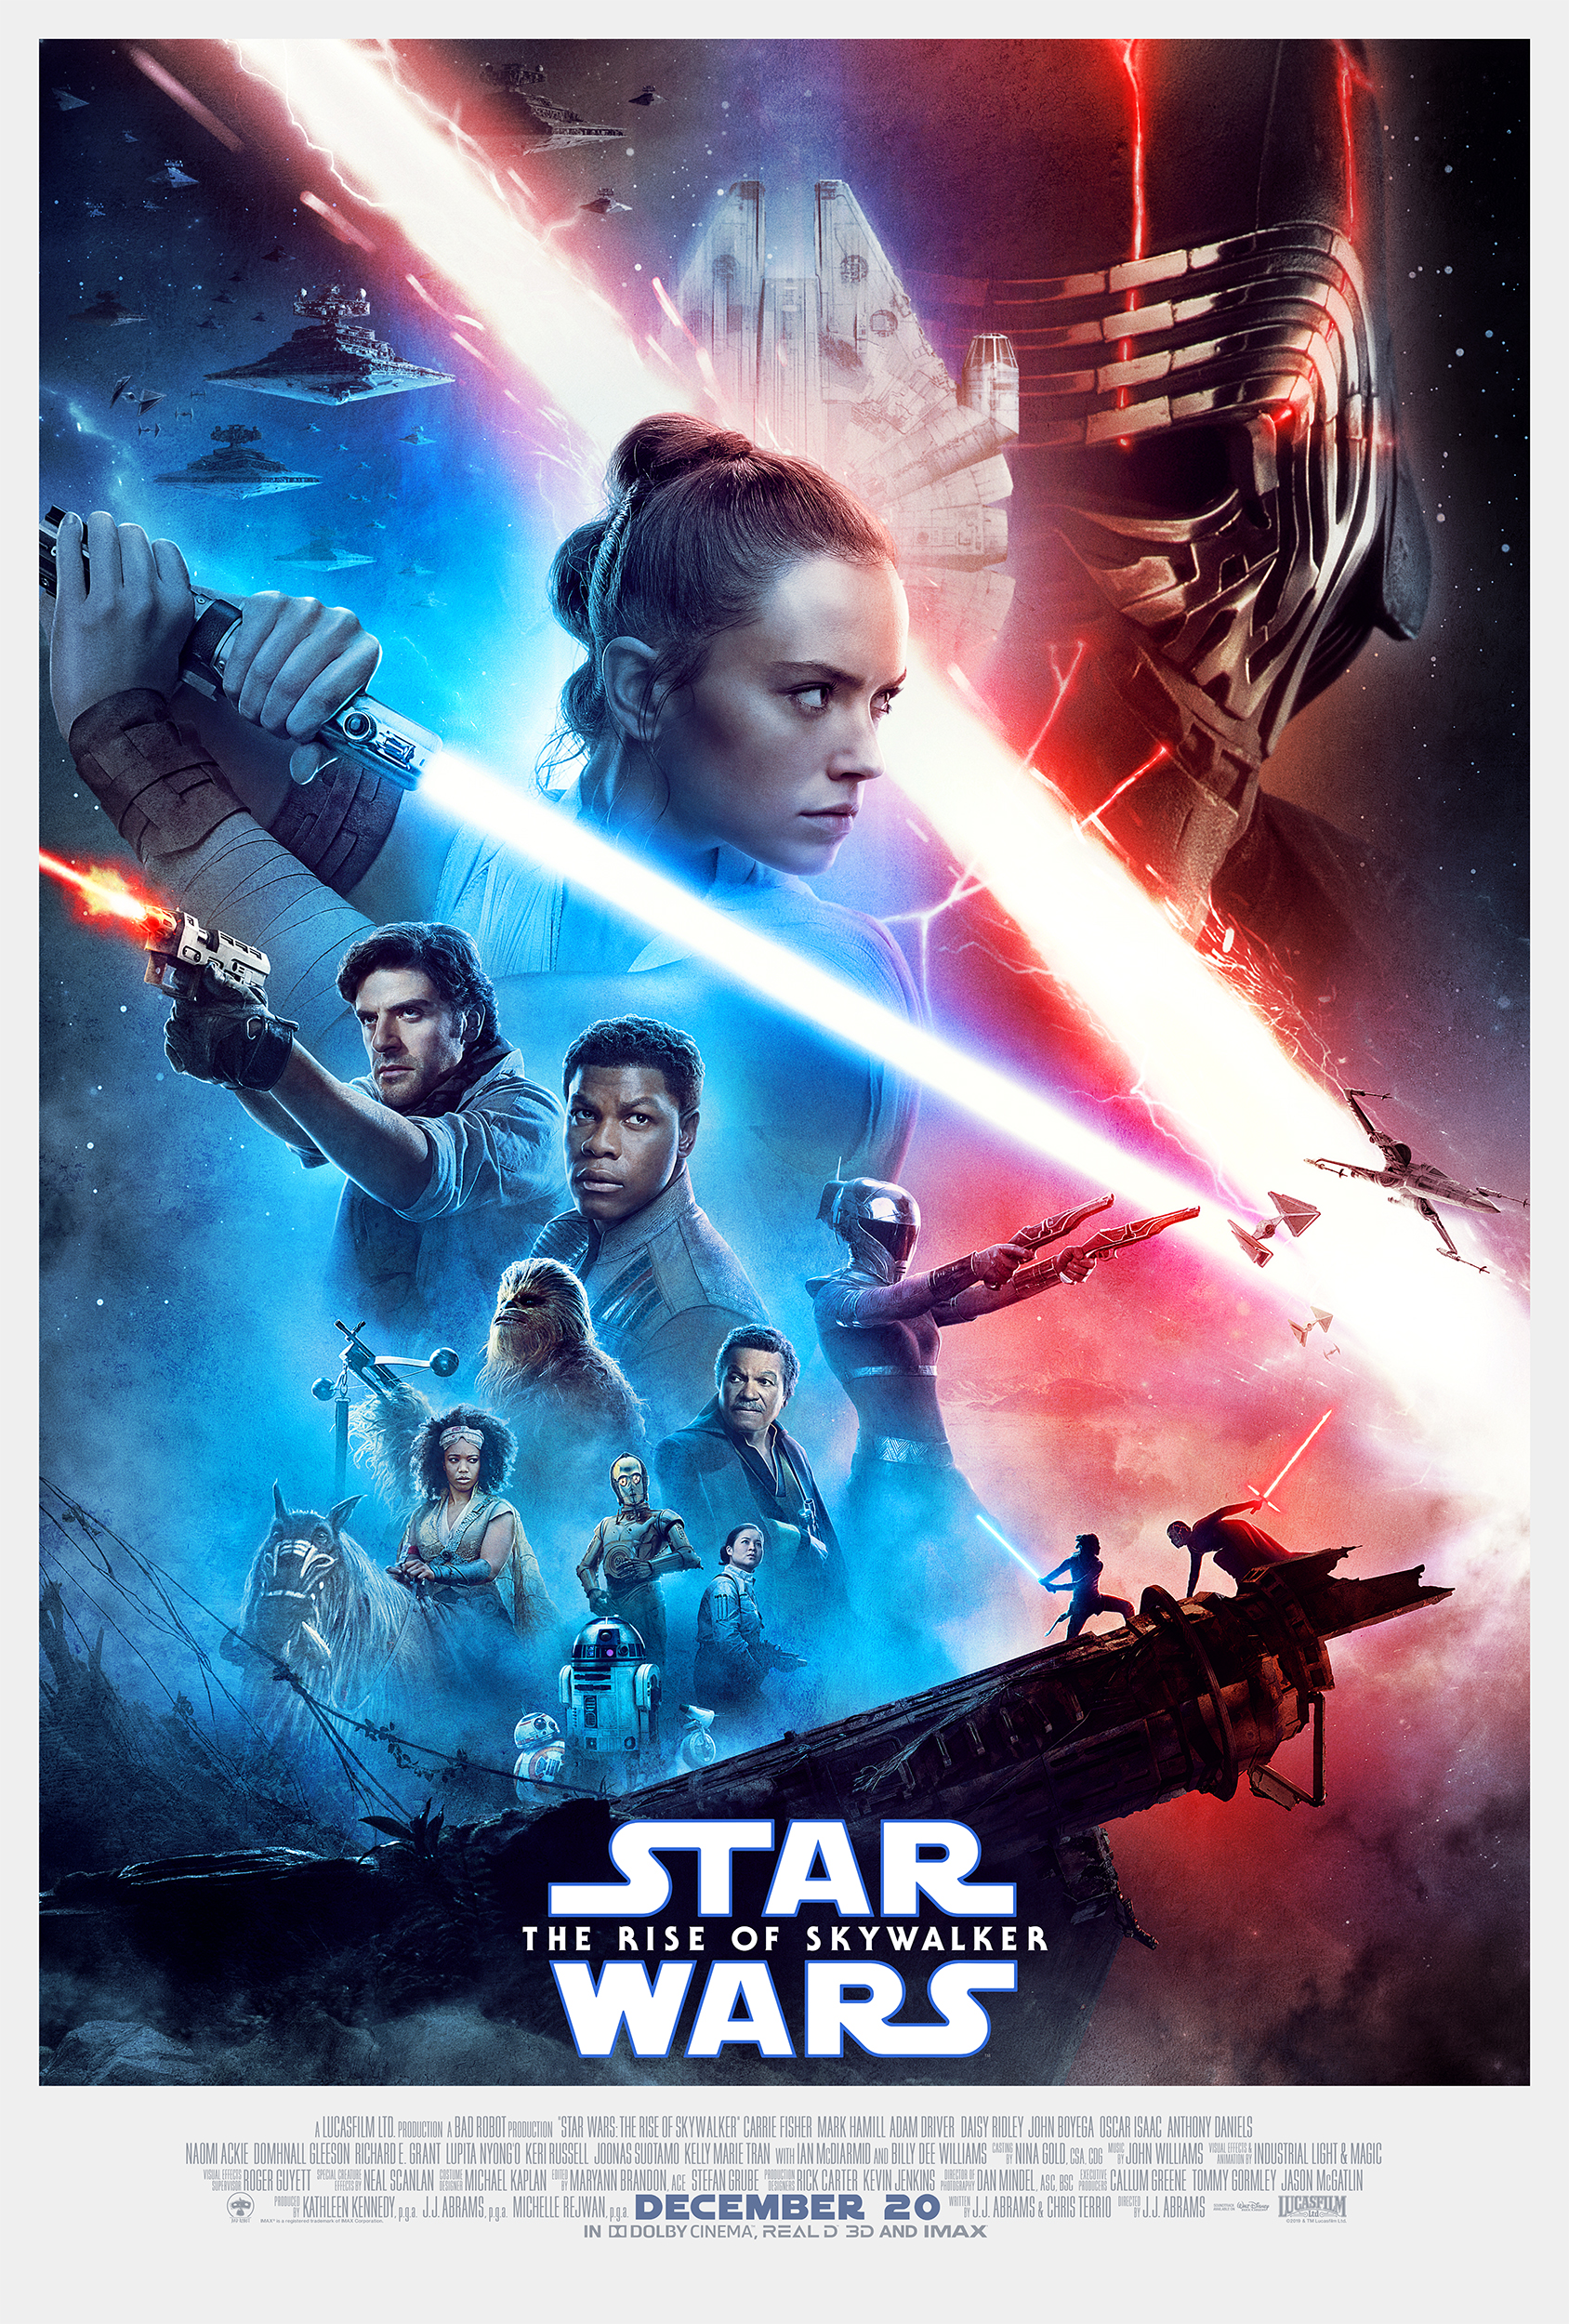 The Rise of Skywalker Poster and Trailer